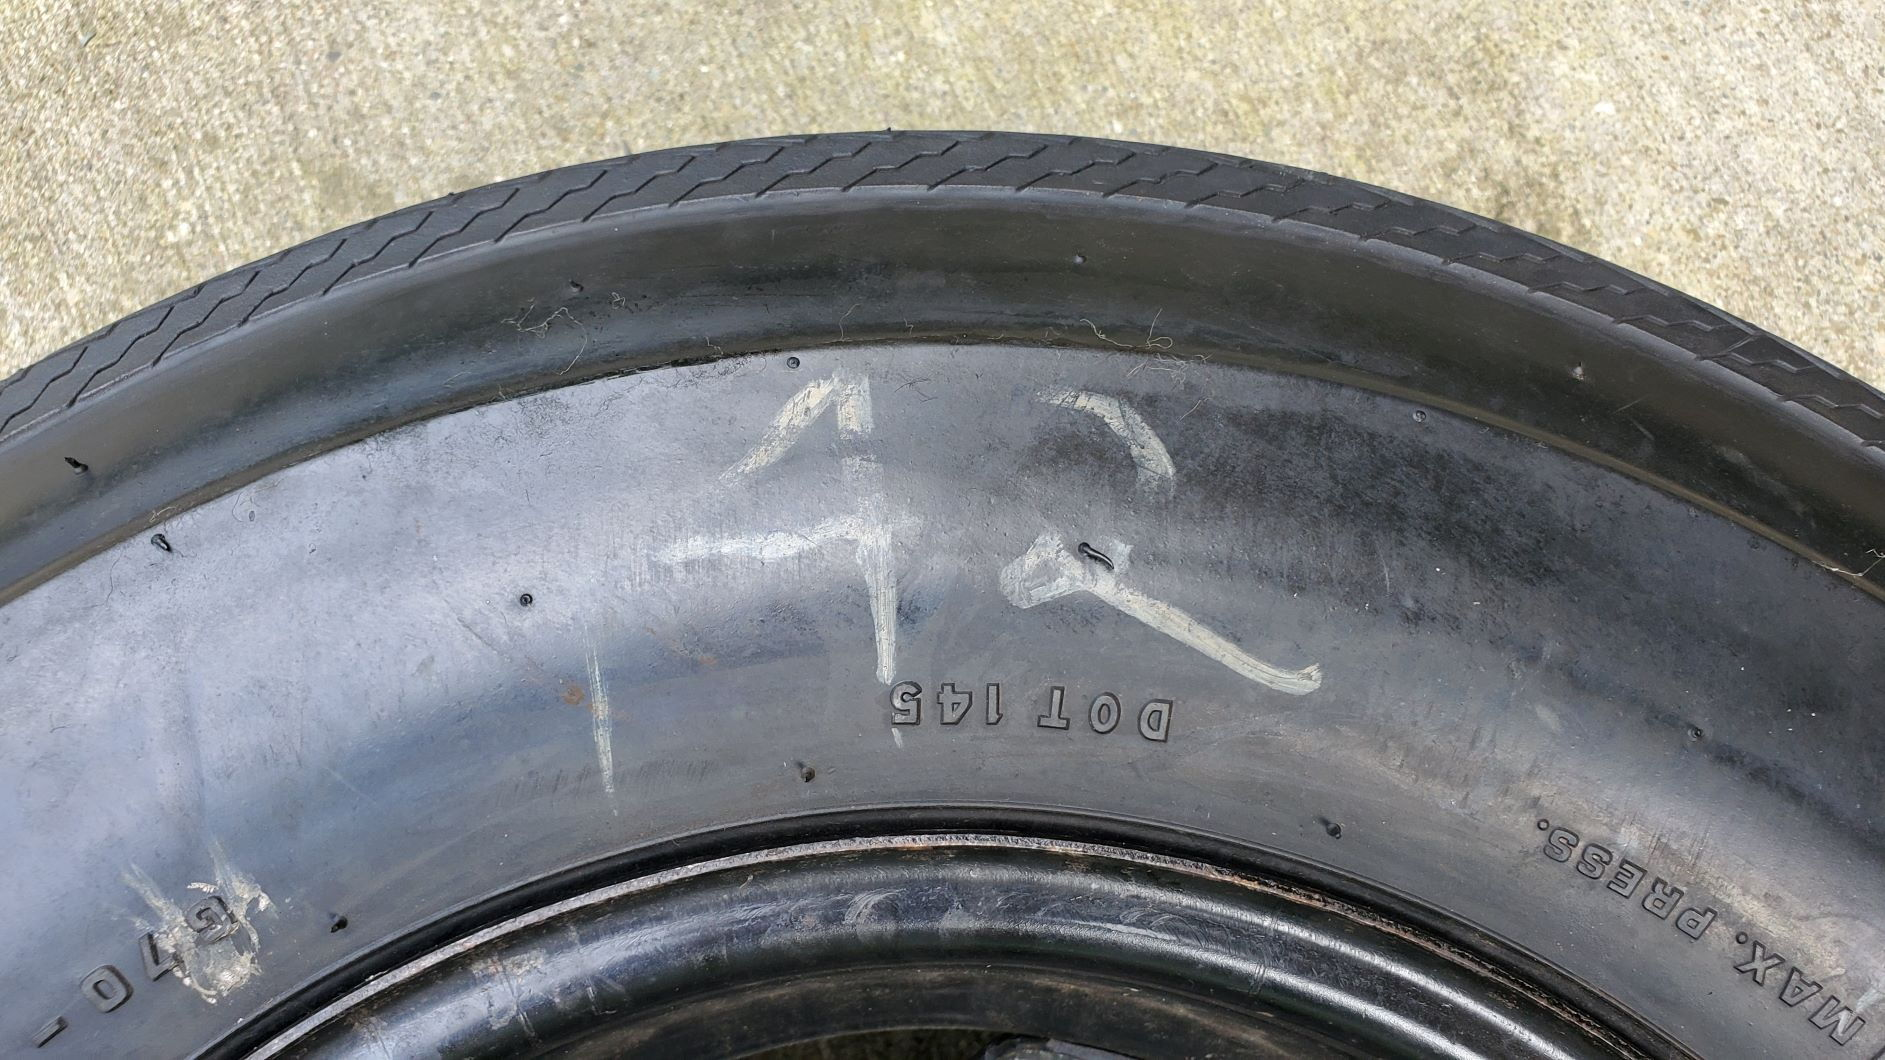 70 442 w30's-Goodyear or Firestone tires? - Page 2